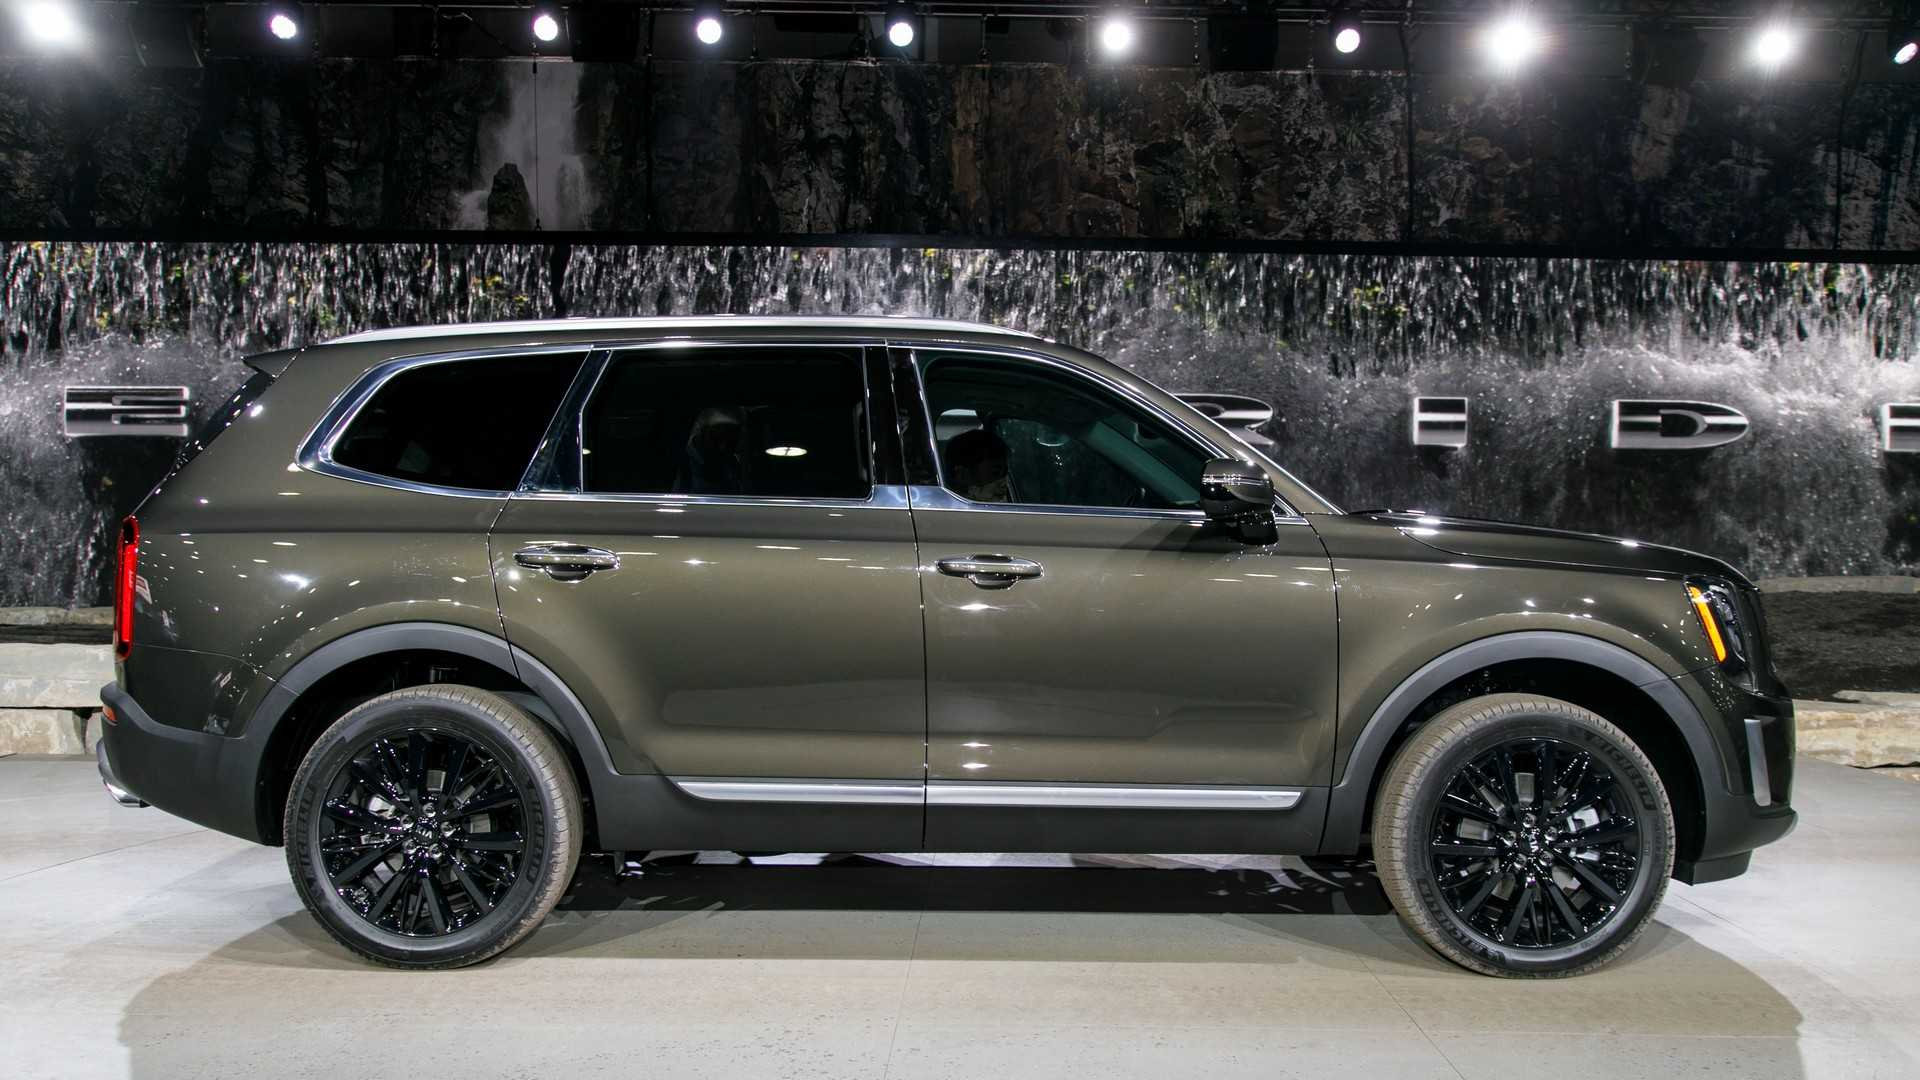 72 New 2020 Kia Telluride Sx Interior Ratings for 2020 Kia Telluride Sx Interior